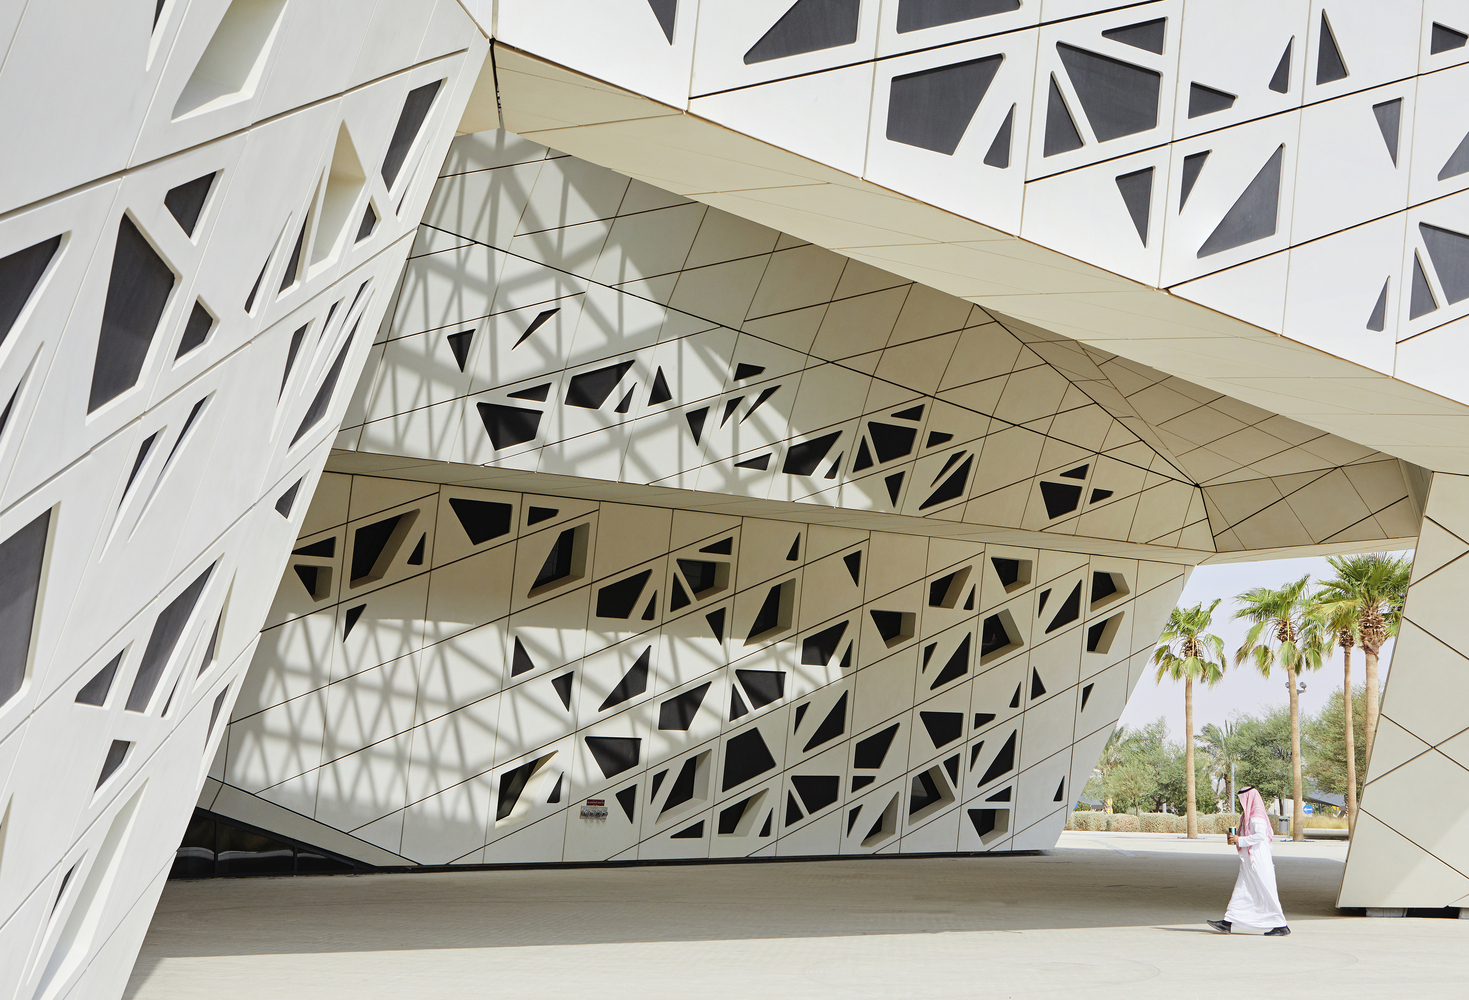 King Abdullah Petroleum Studies and Research Centre - Zaha Hadid Architects - projects - IGS Magazine - news - 18